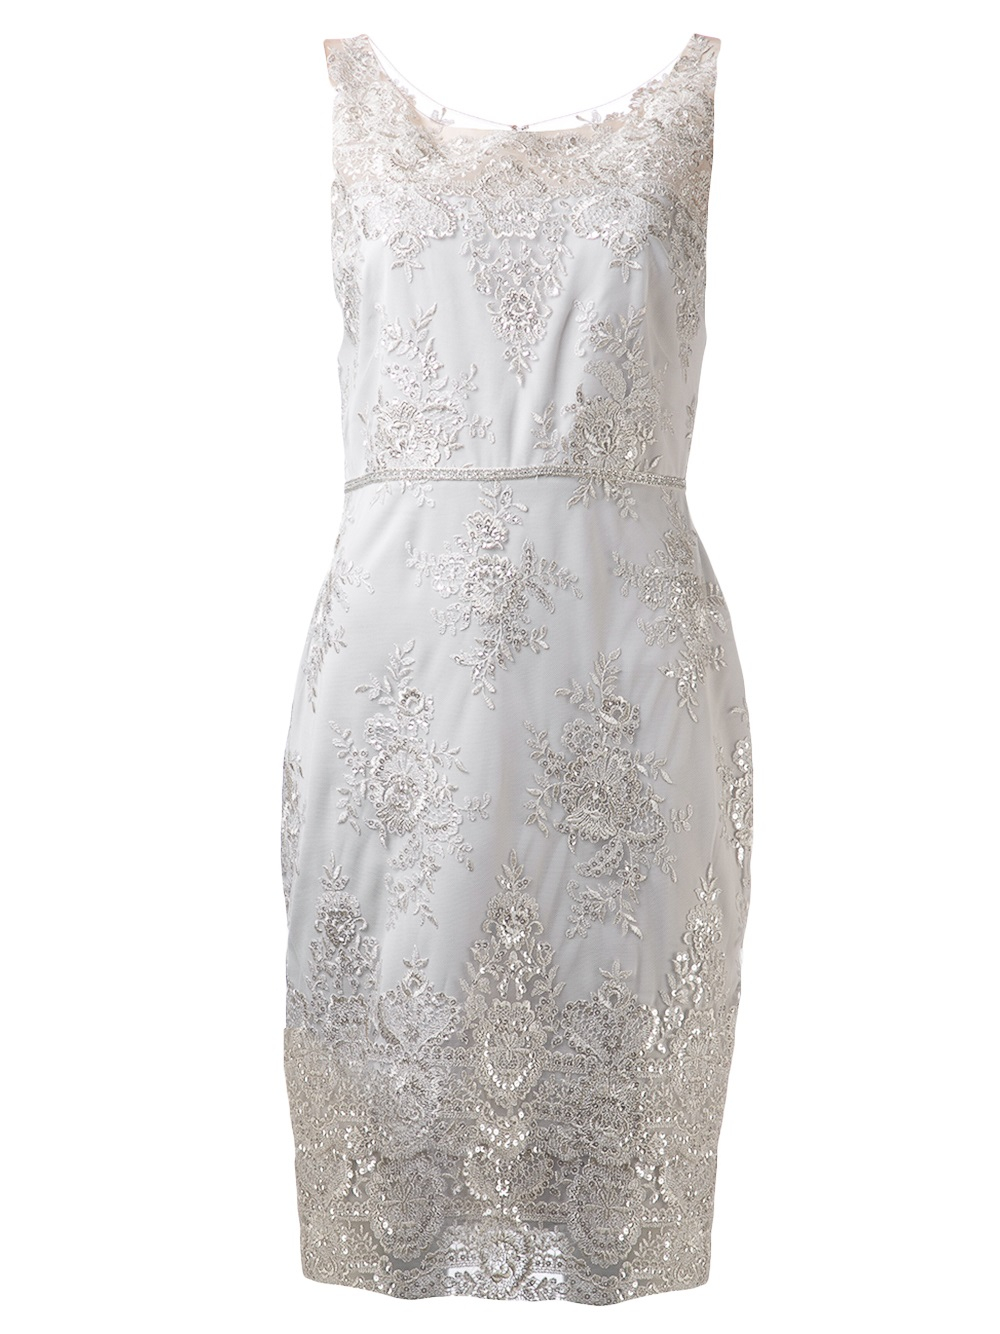 Notte by marchesa silver lace cocktail dress